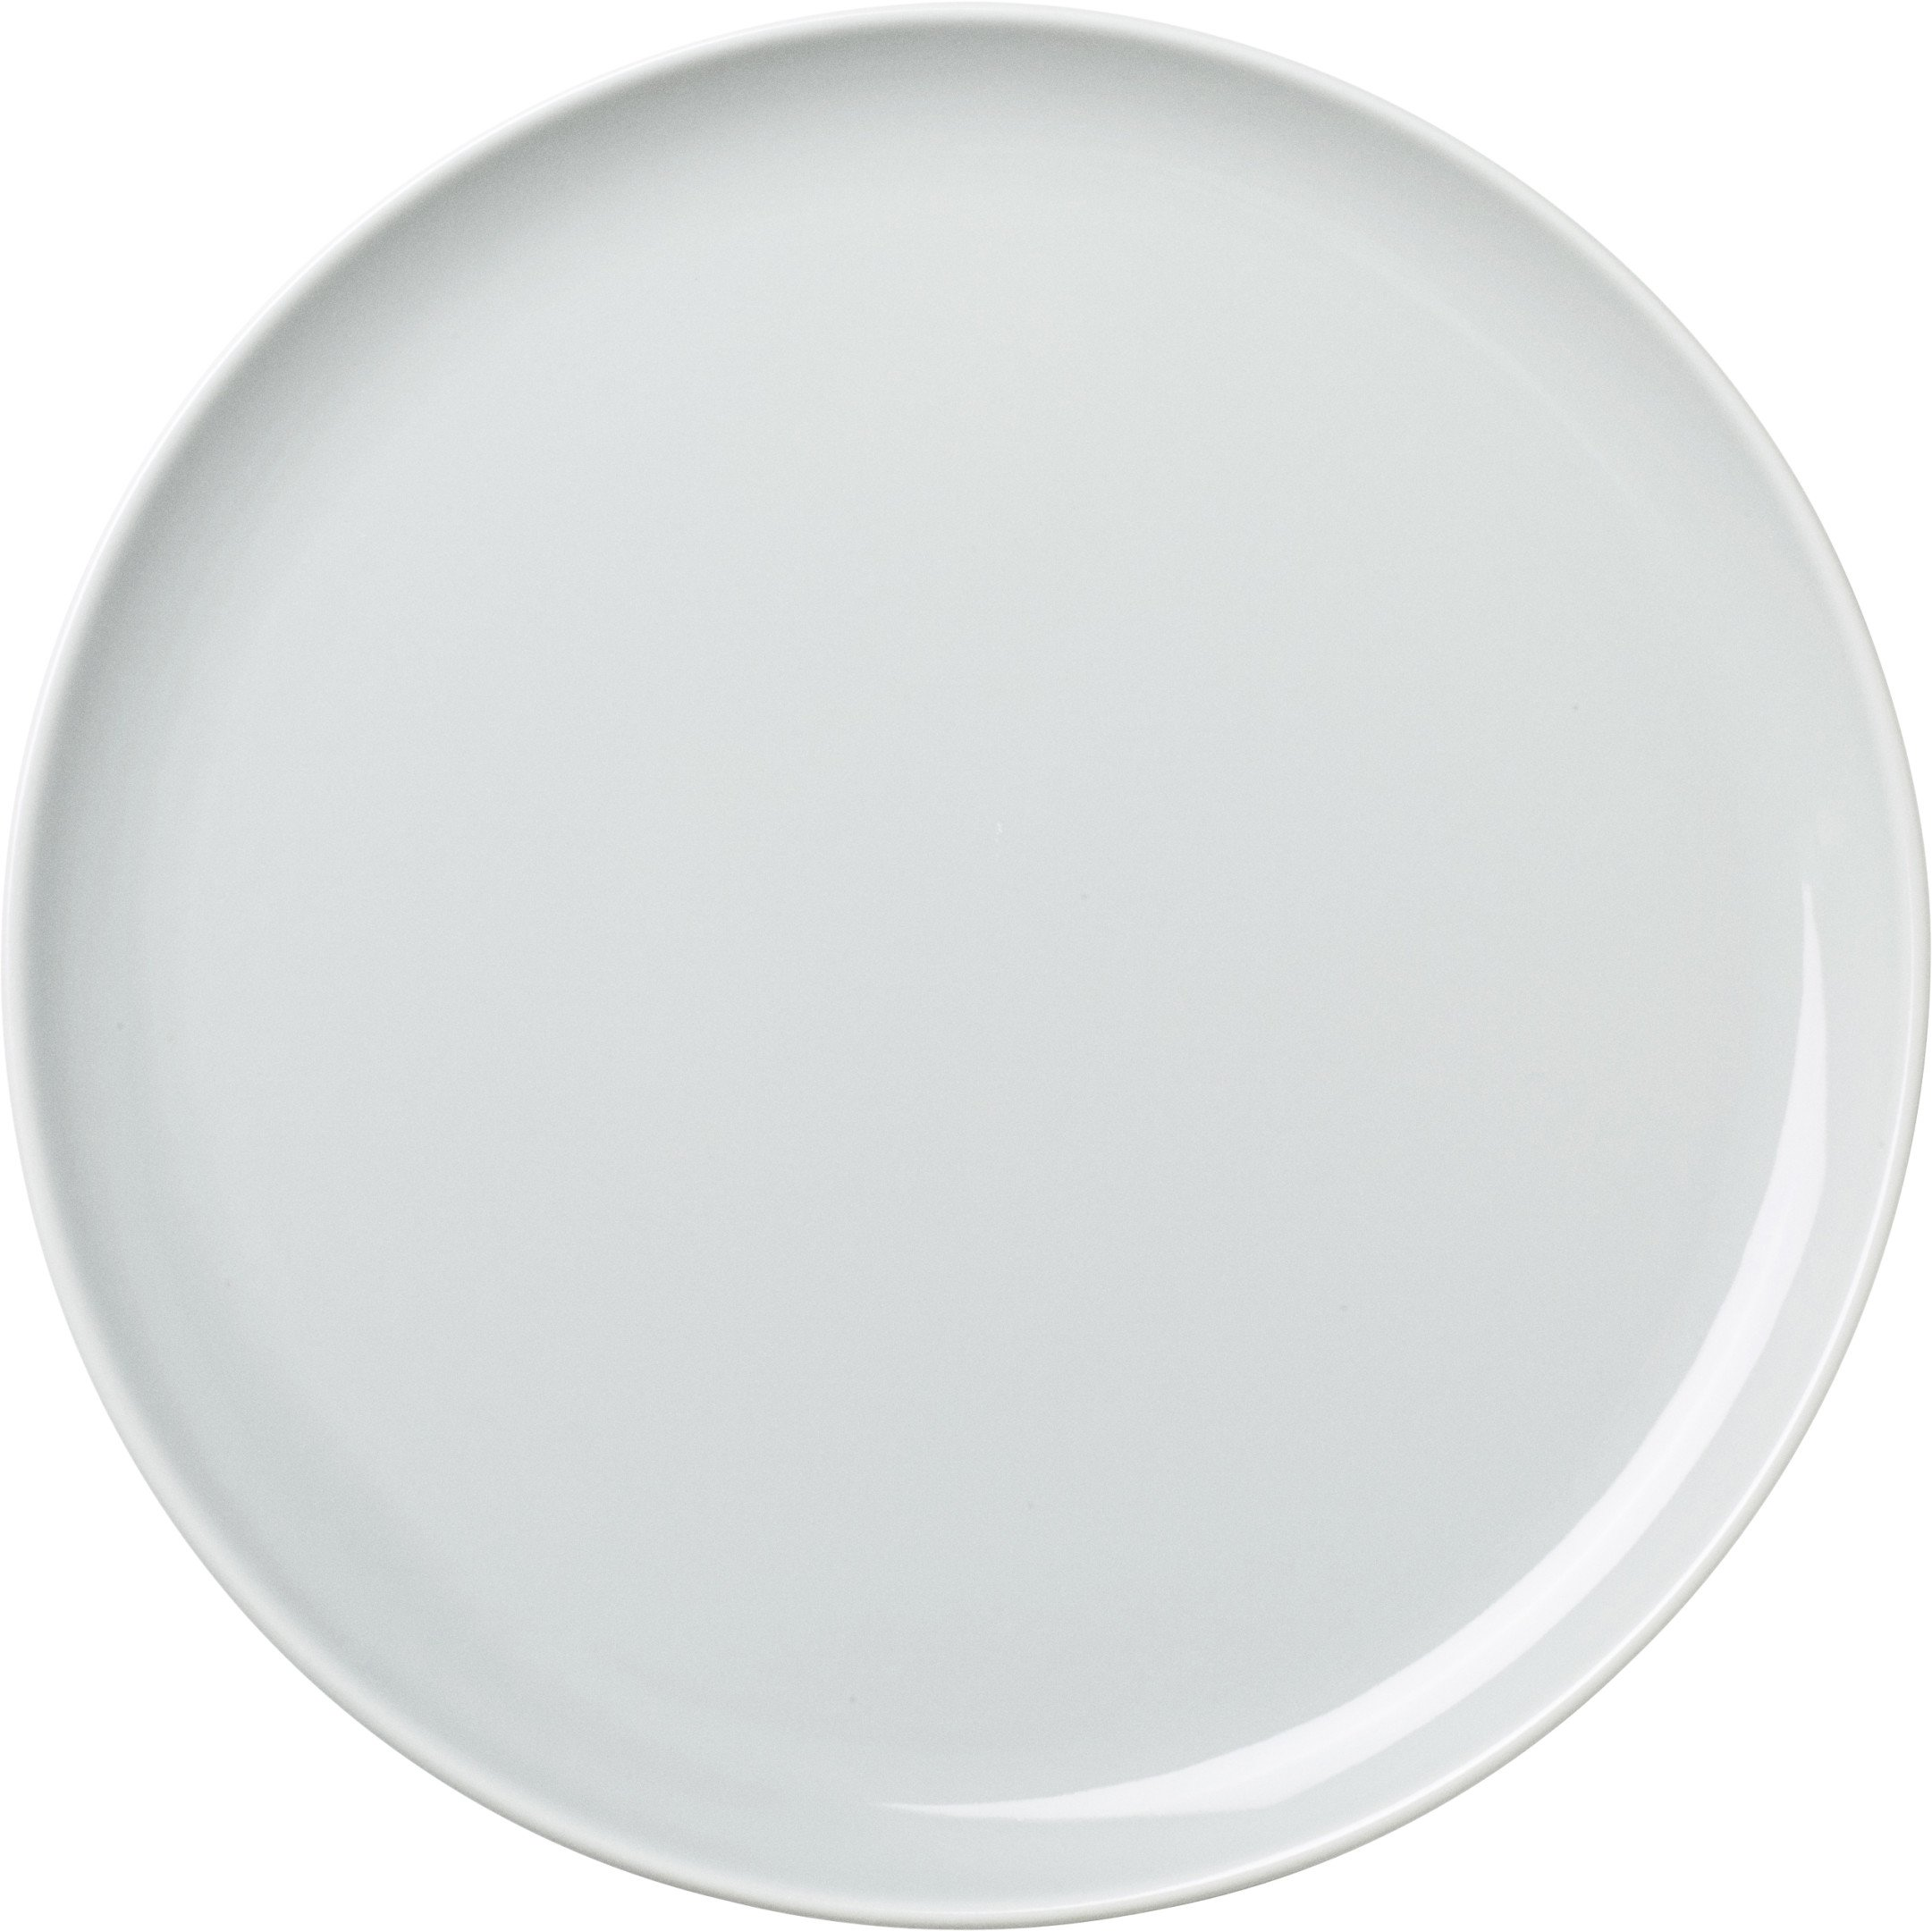 New Norm Plate White Ø 19cm by Norm Architects for Menu